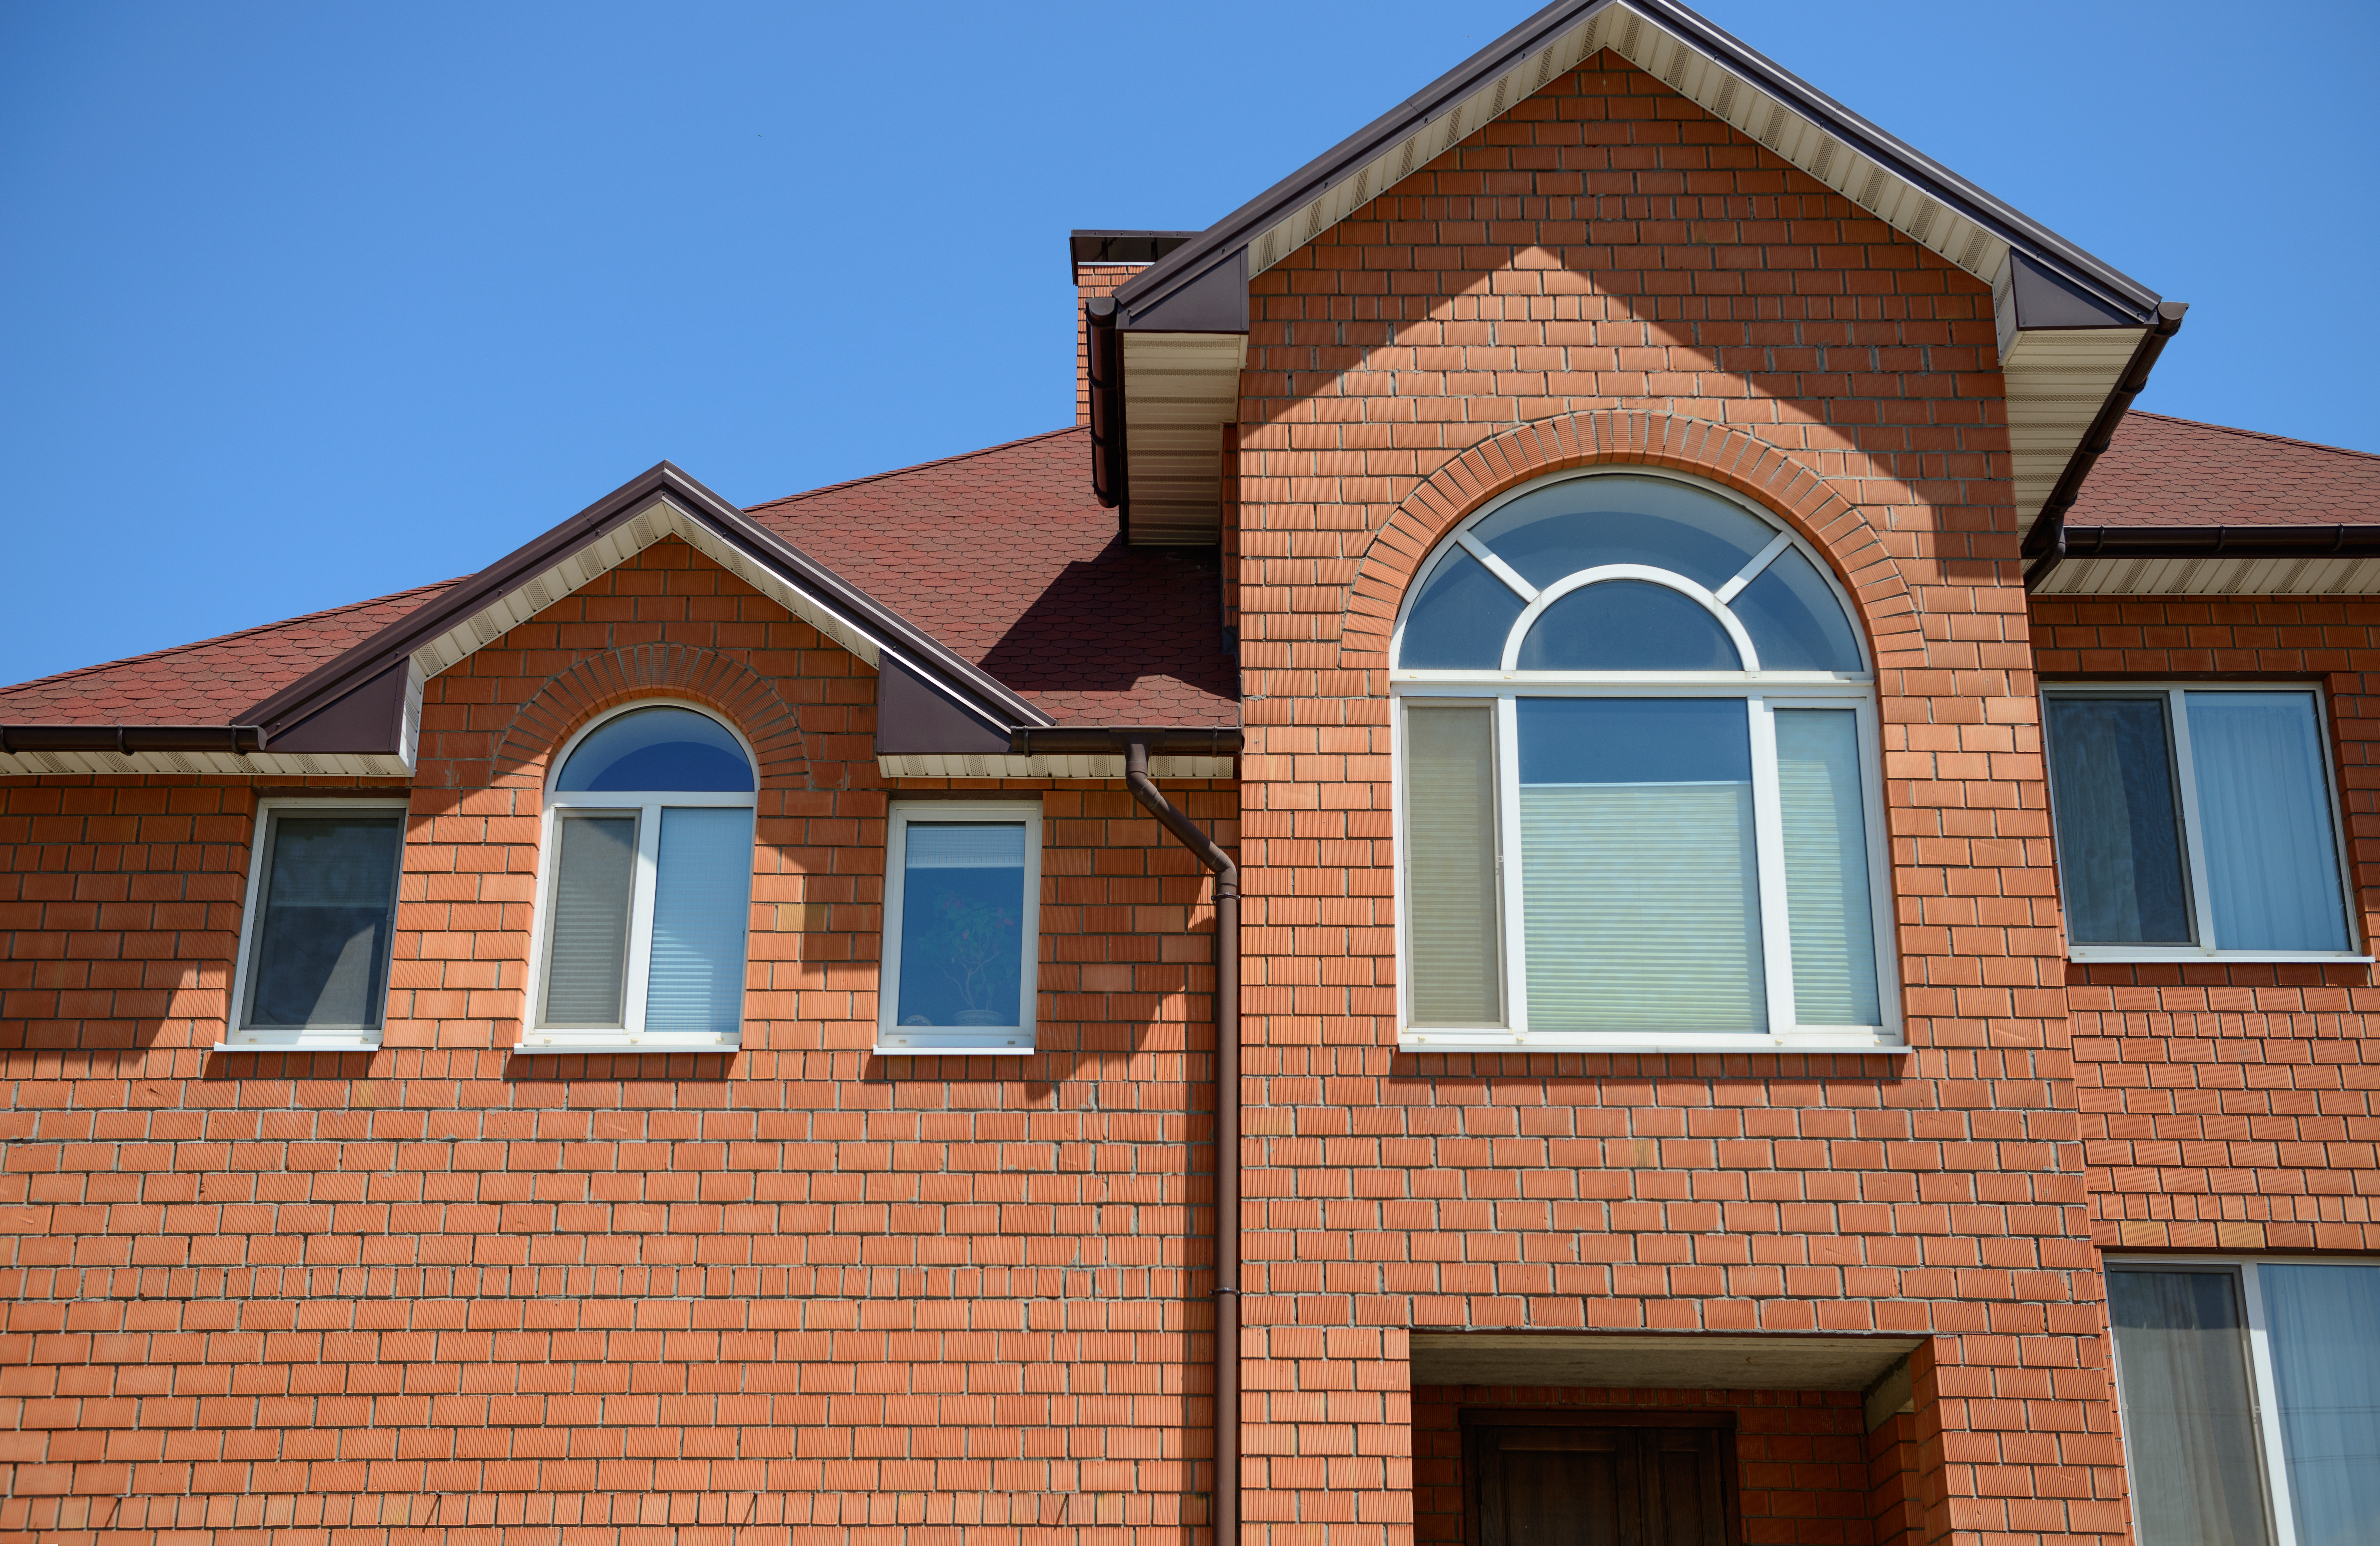 Arched Window ideas for your home